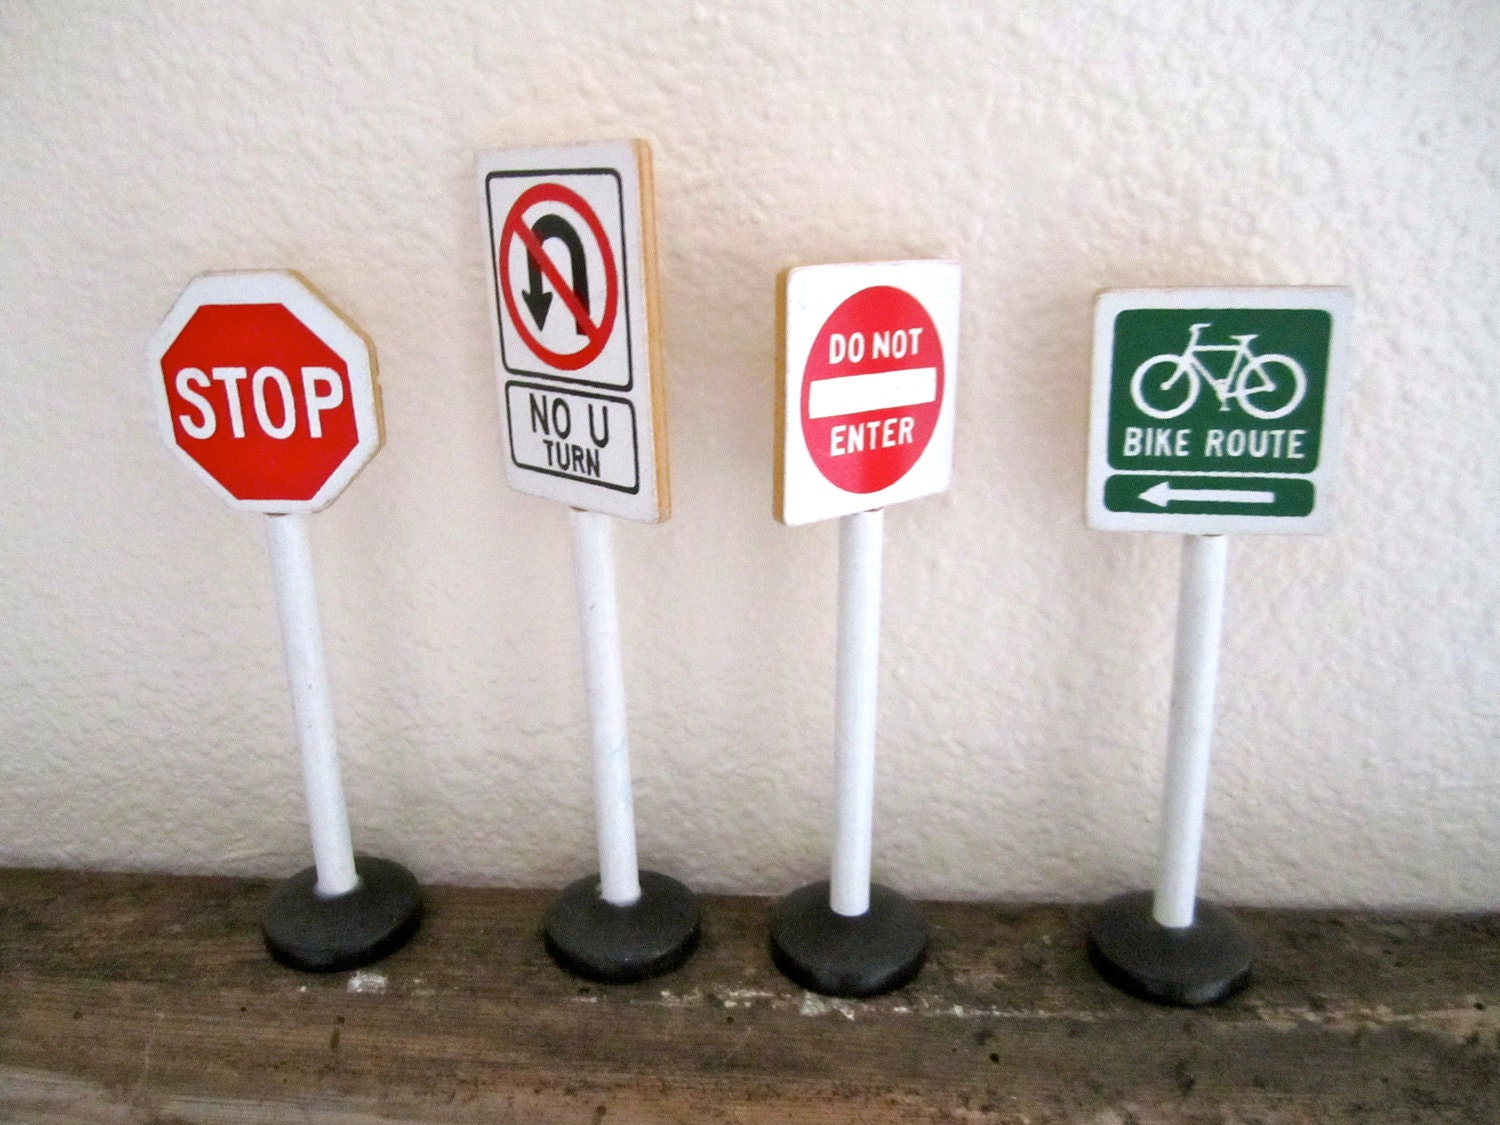 Toy Road Signs Wood bike route stop no u turn do not